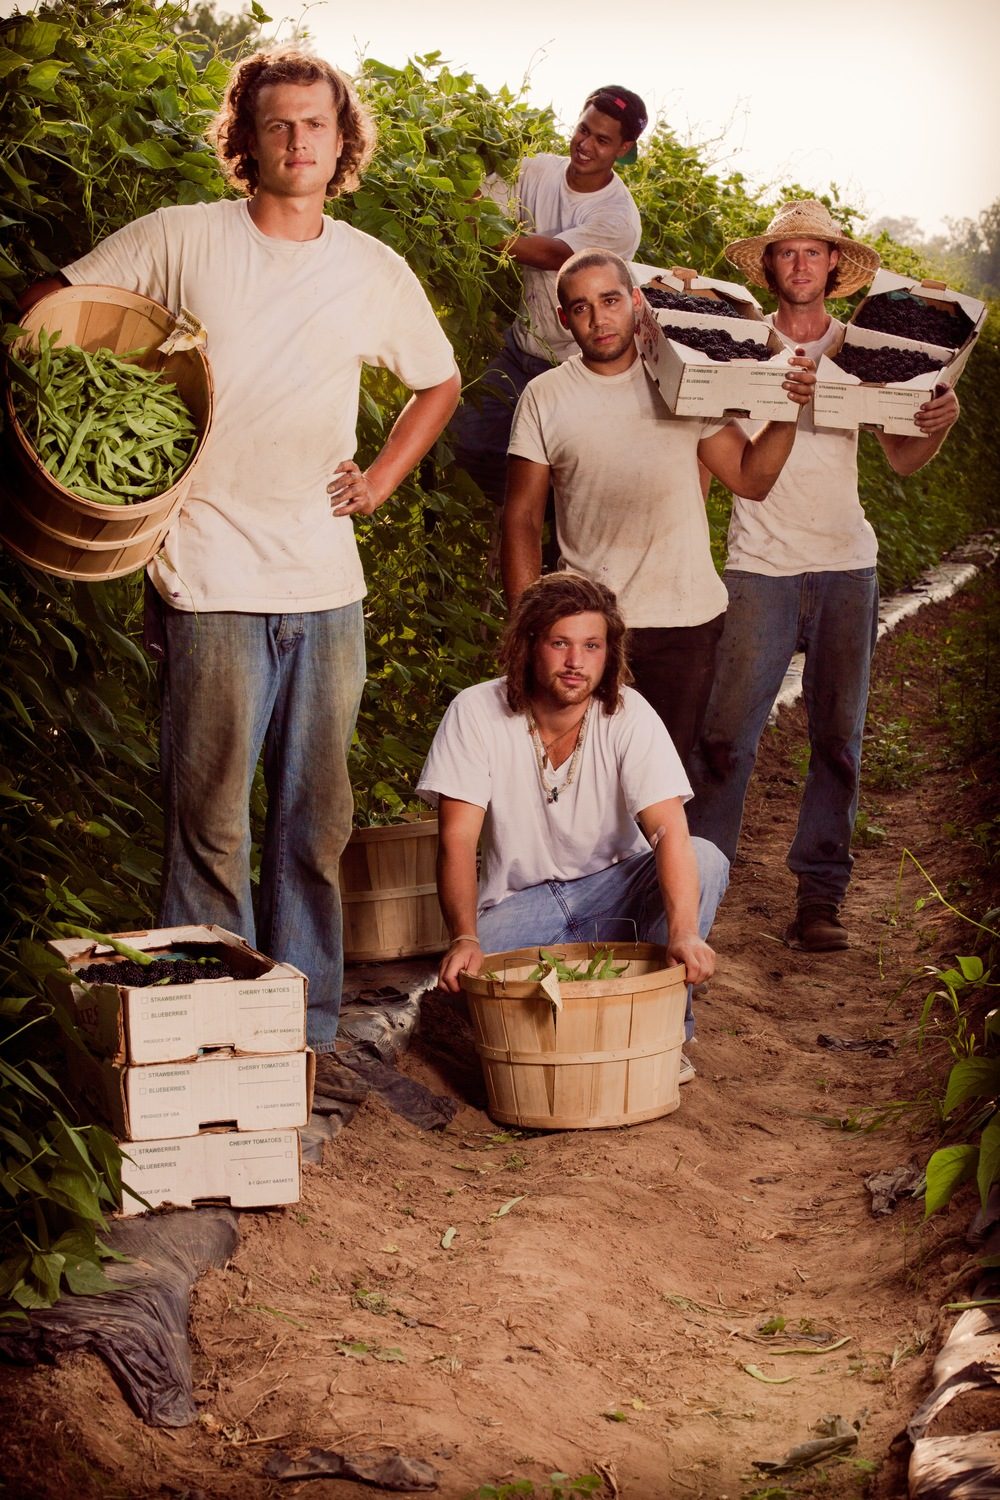 Farm boys and the day's bounty of berries...